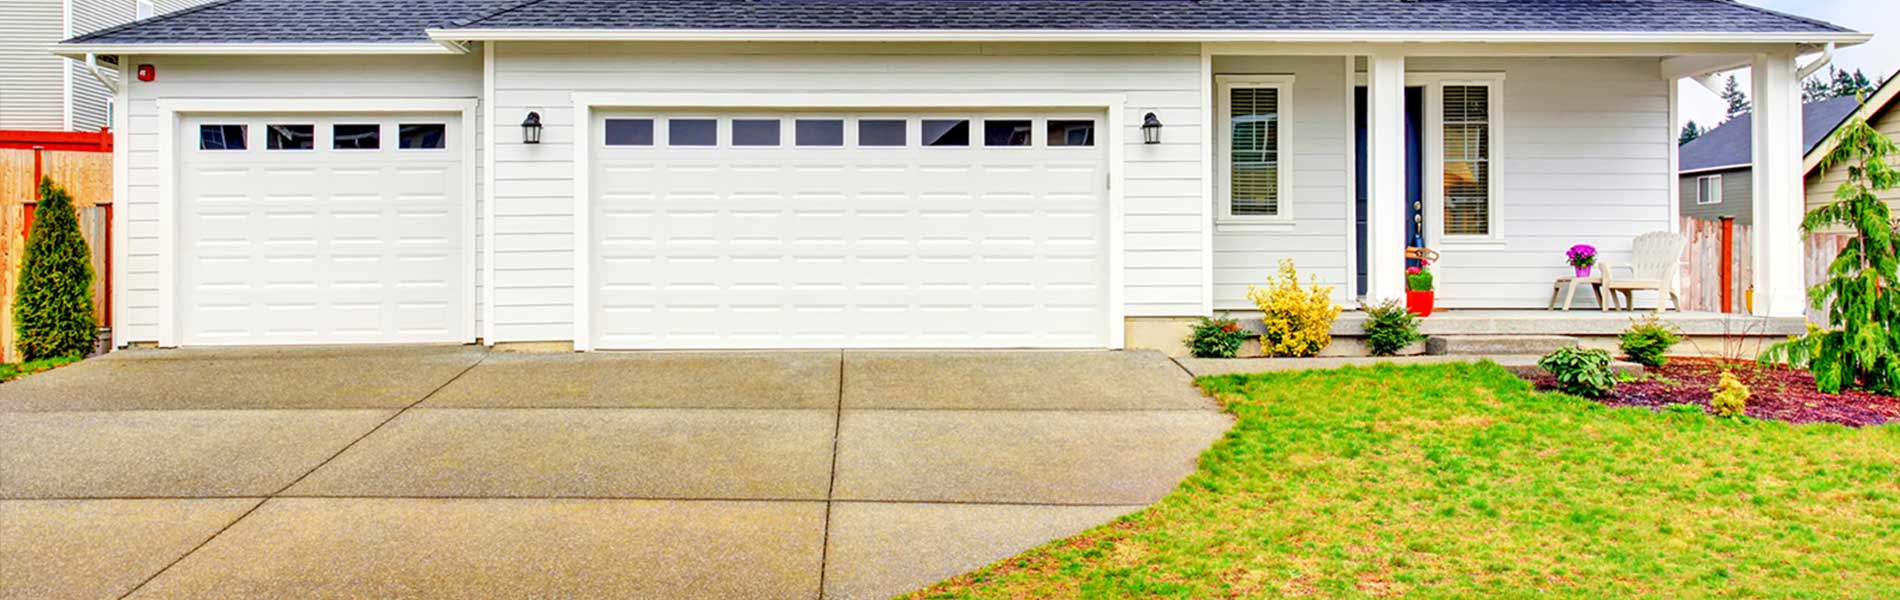 Garage Door 24 Hours Repairs, Torrance, CA 310-751-9995